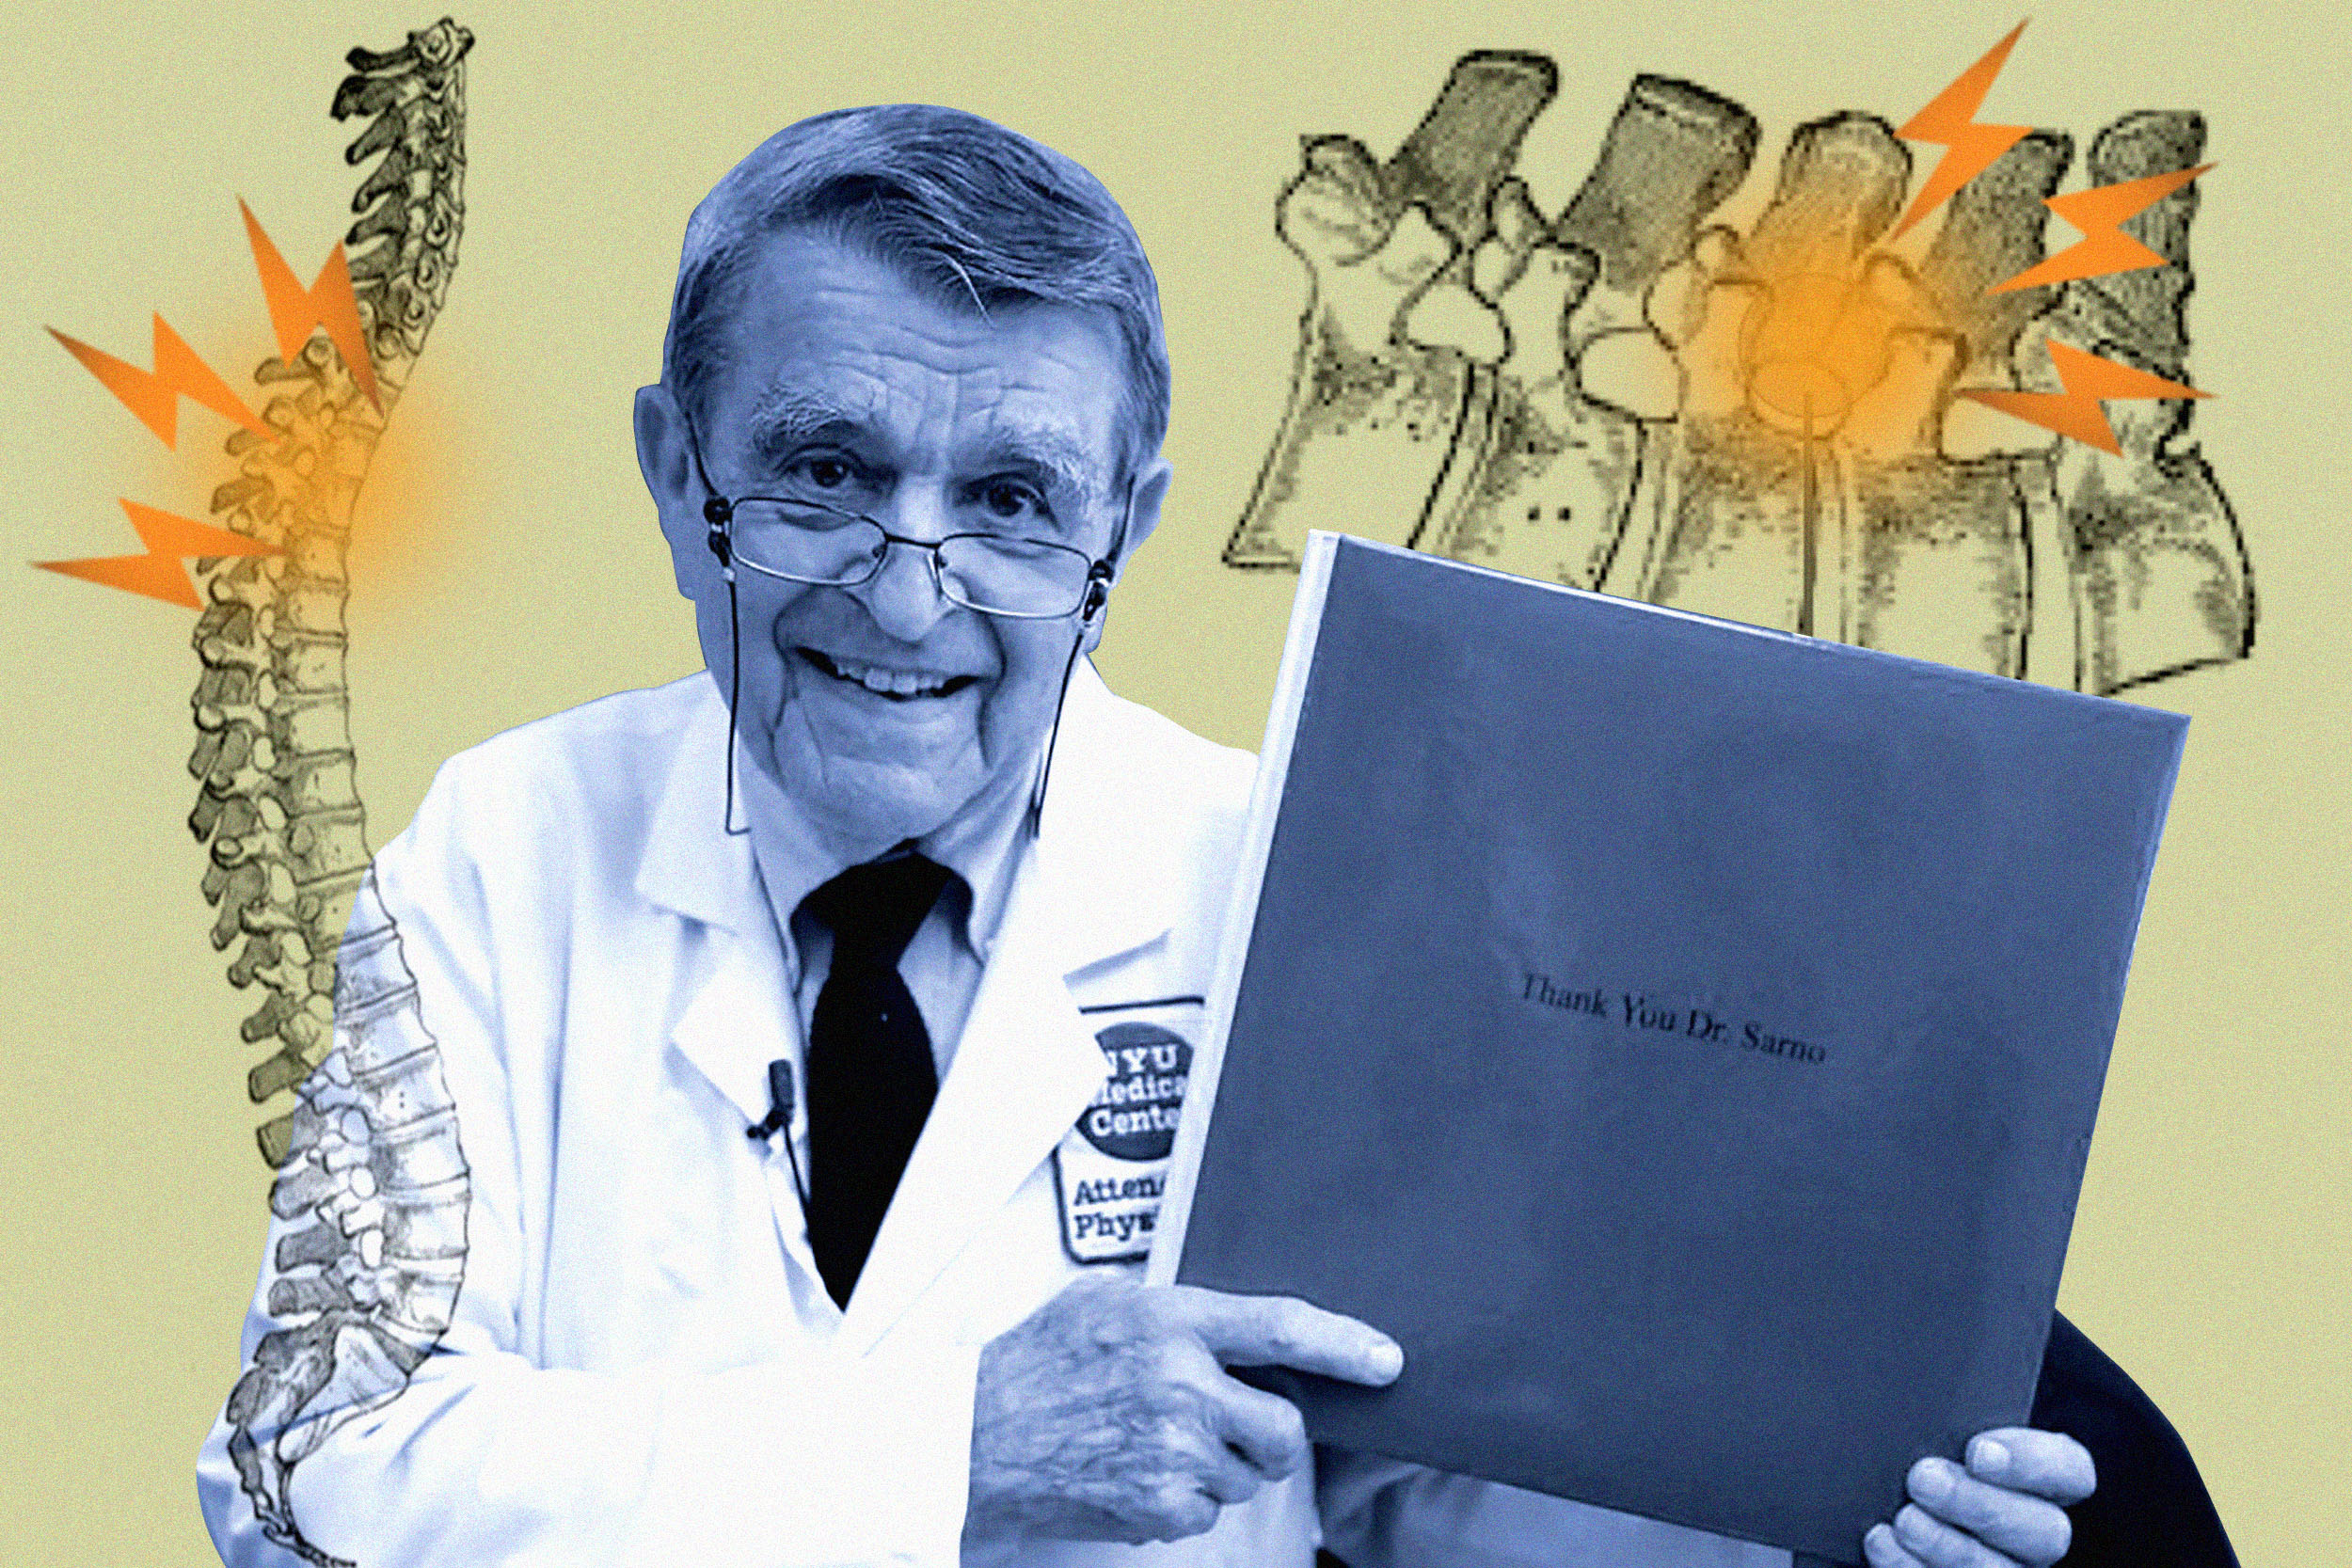 America's most famous back pain doctor said pain is in your head. Thousands think he's right.